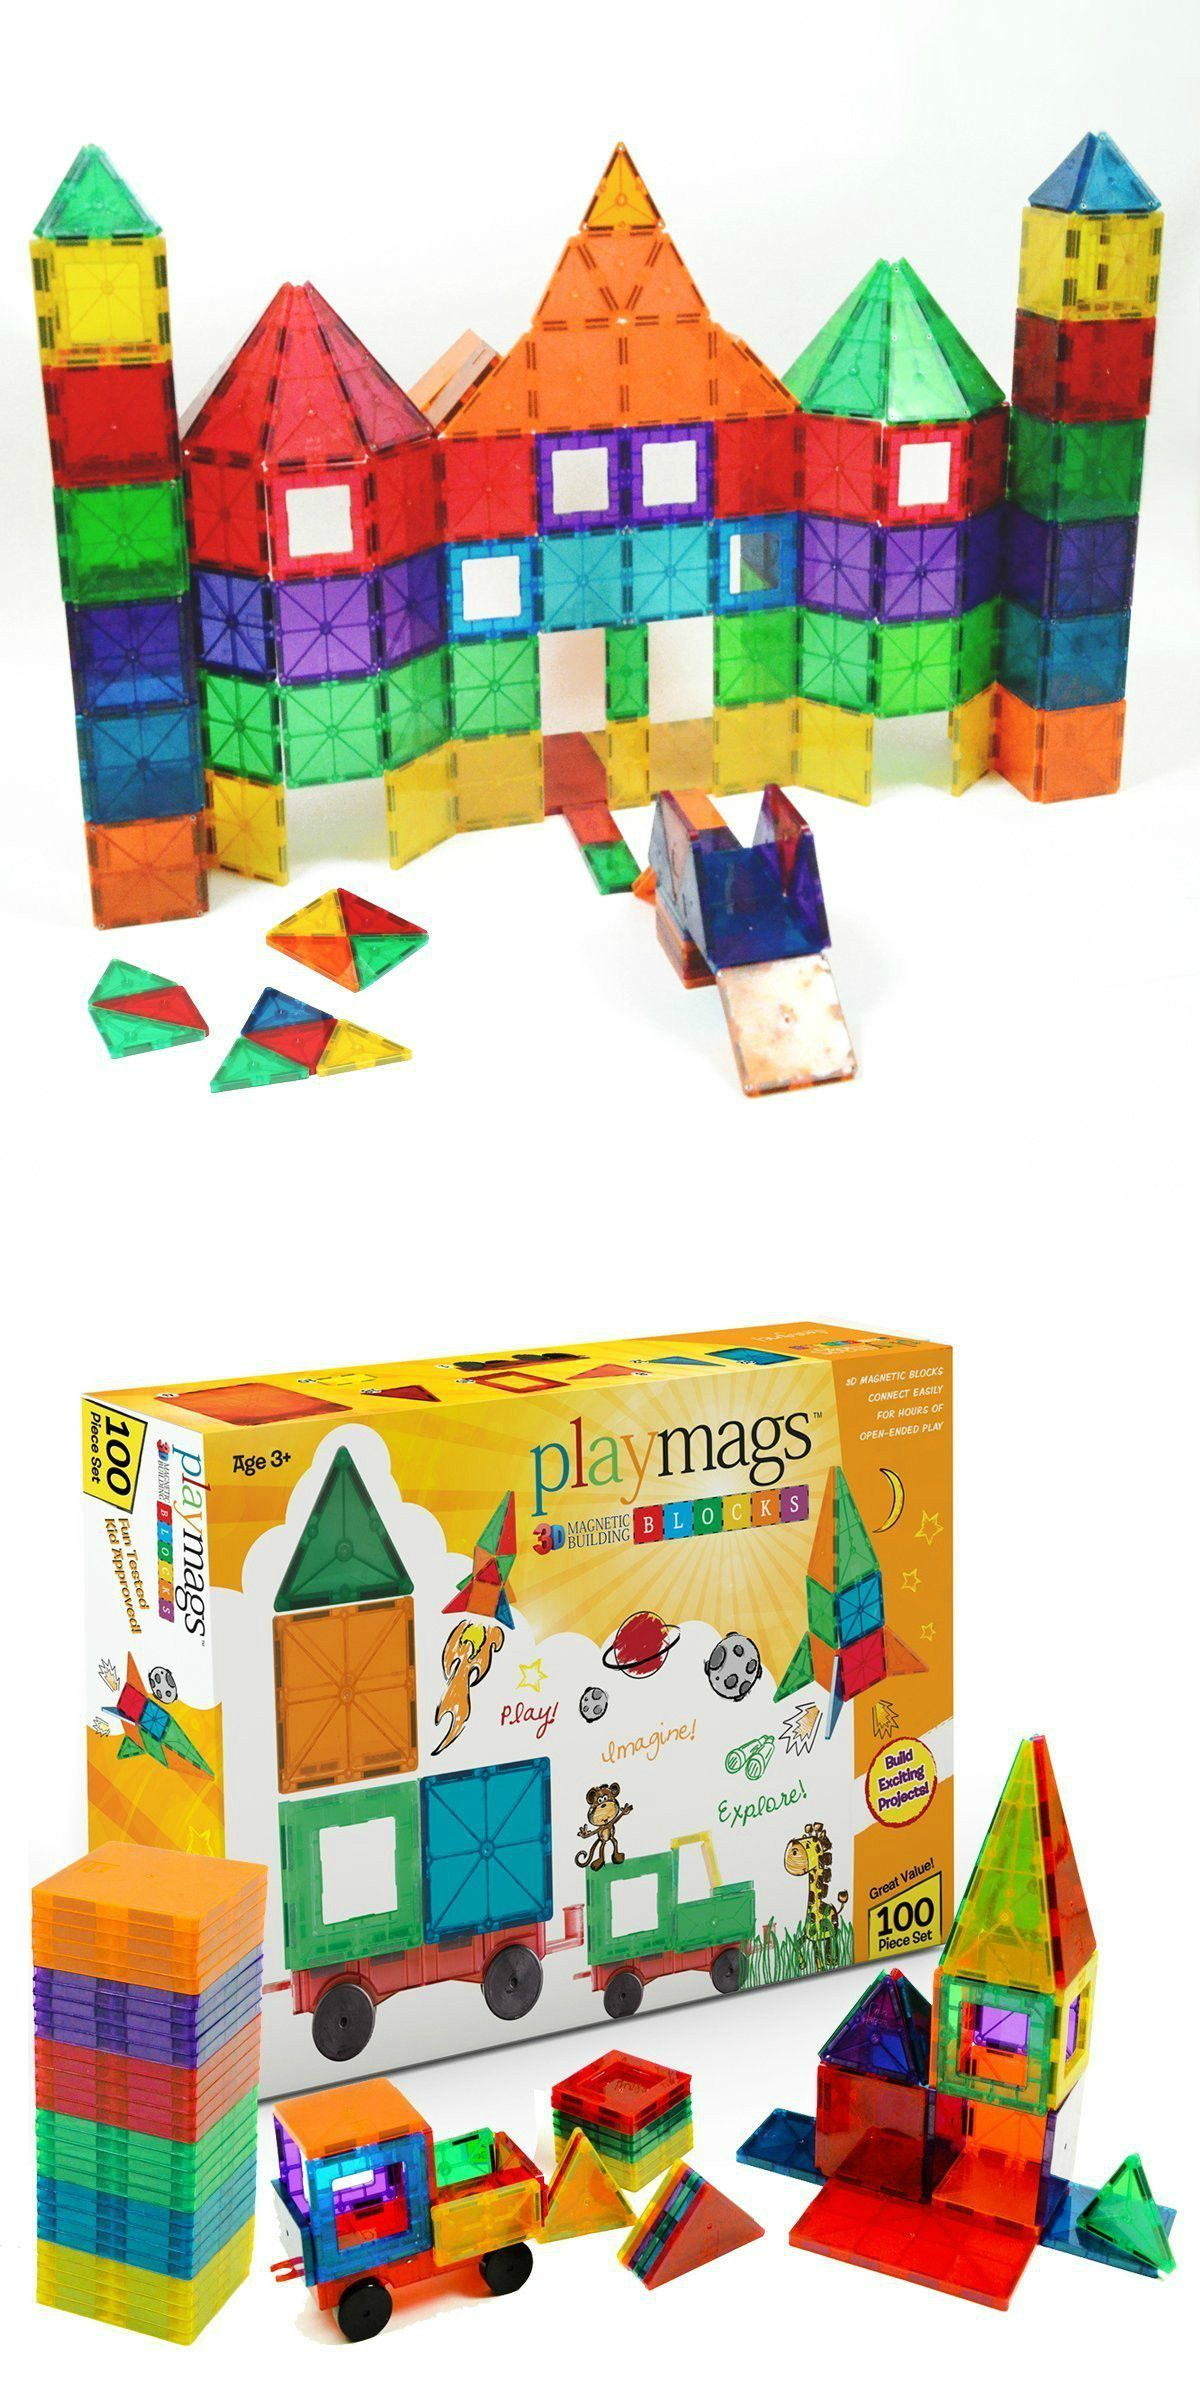 8f335e70e6d1d My kids love these magnetic building blocks (similar to Magna tiles)